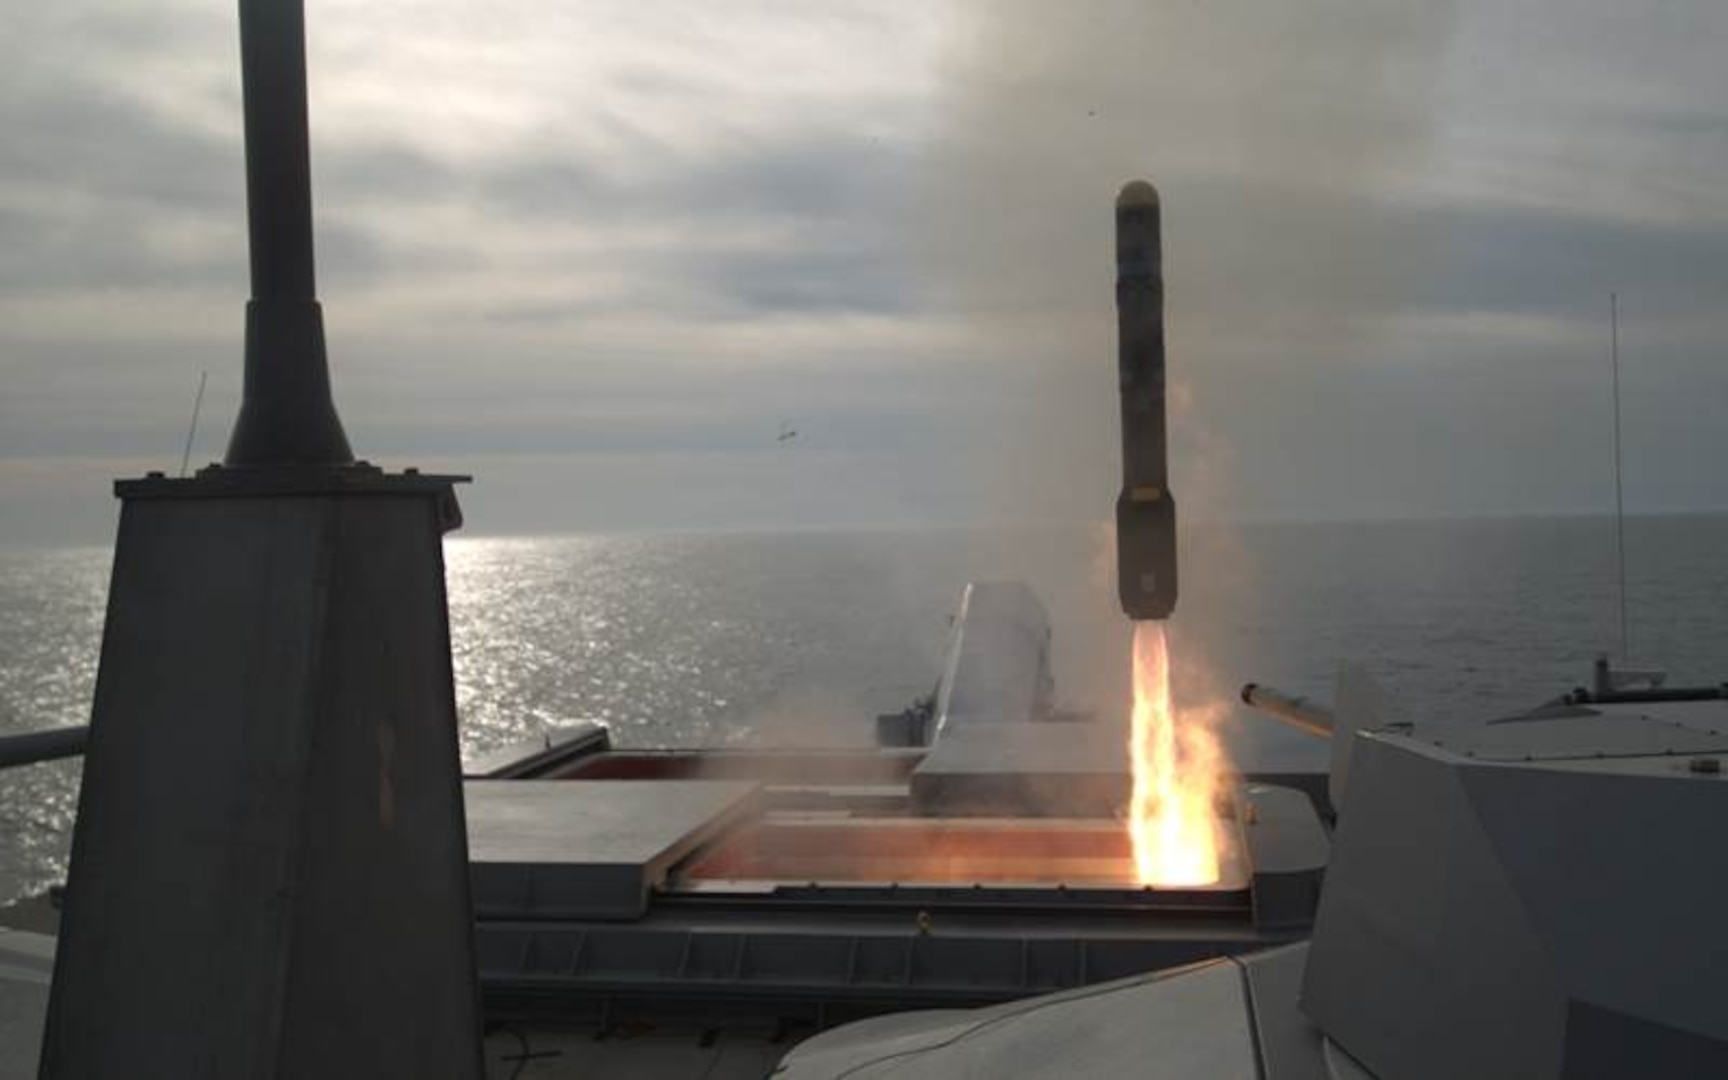 ATLANTIC OCEAN—A Longbow Hellfire Missile is fired from Littoral Combat Ship USS Detroit (LCS 7) on Feb. 28 as part of a structural test firing of the Surface to Surface Missile Module (SSMM). The test marked the first vertical missile launched from an LCS and the first launch of a missile from the SSMM from an LCS.